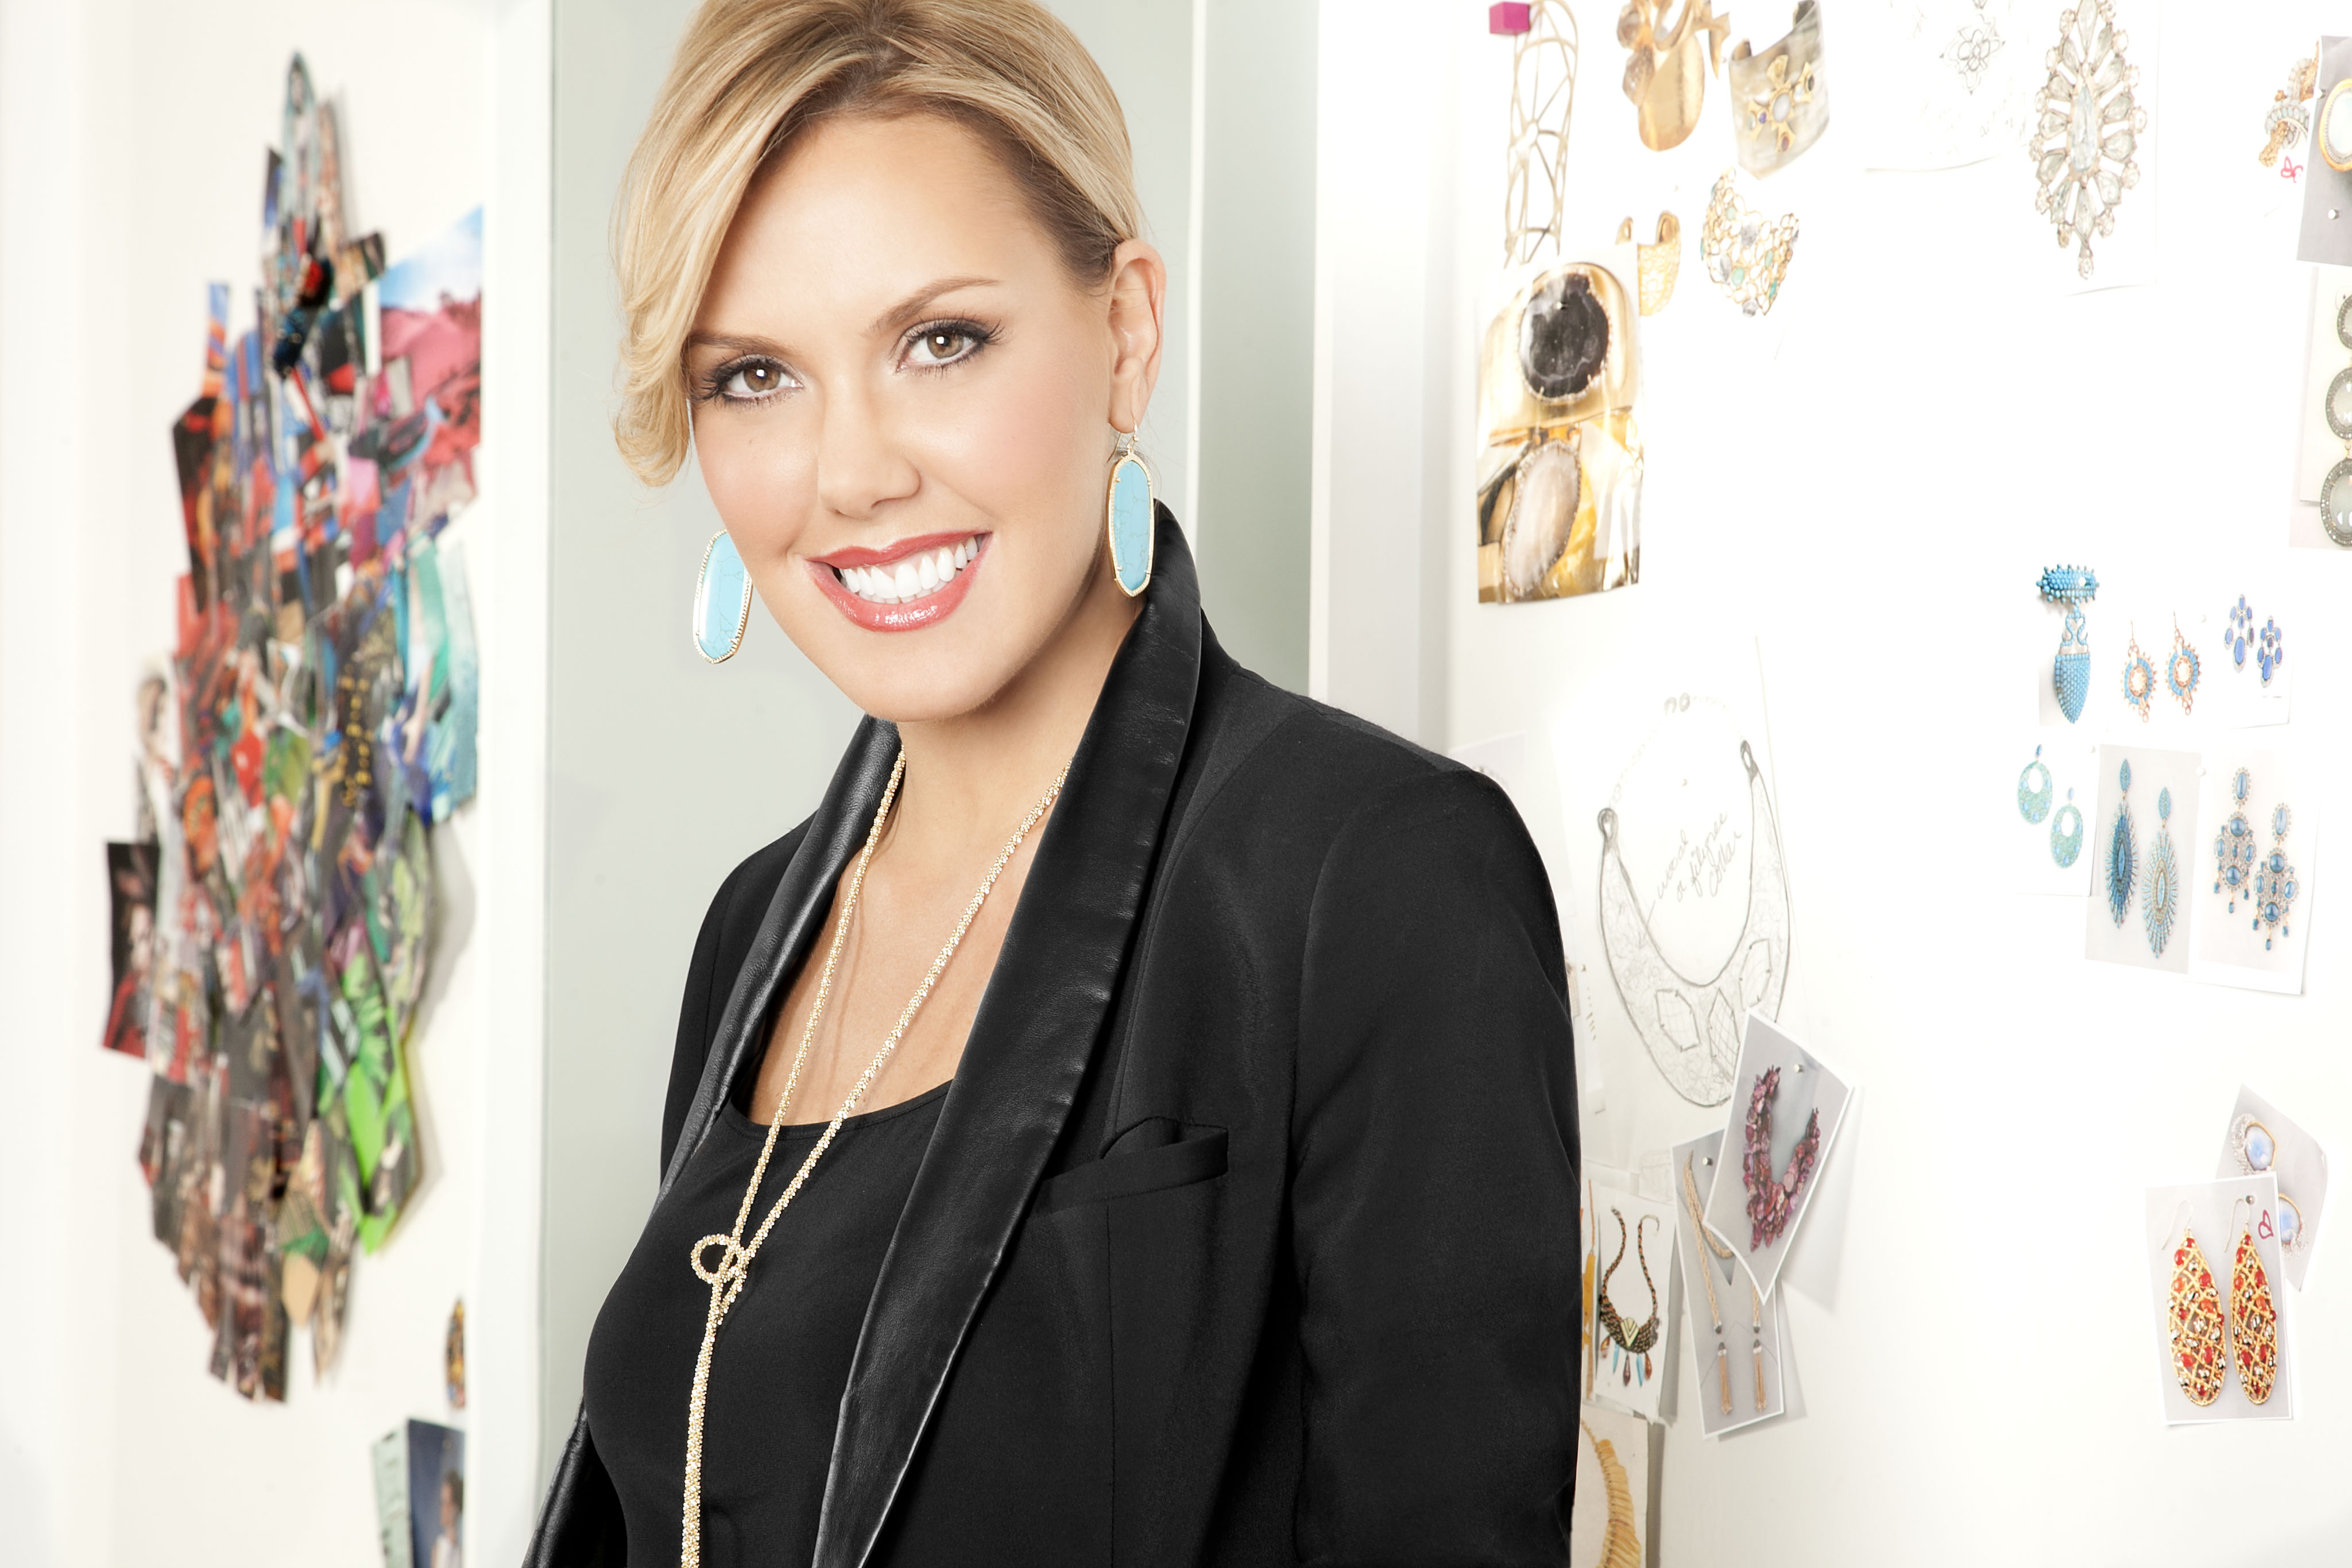 Kendra Scott HD Wallpapers Amp Pictures Hd Wallpapers